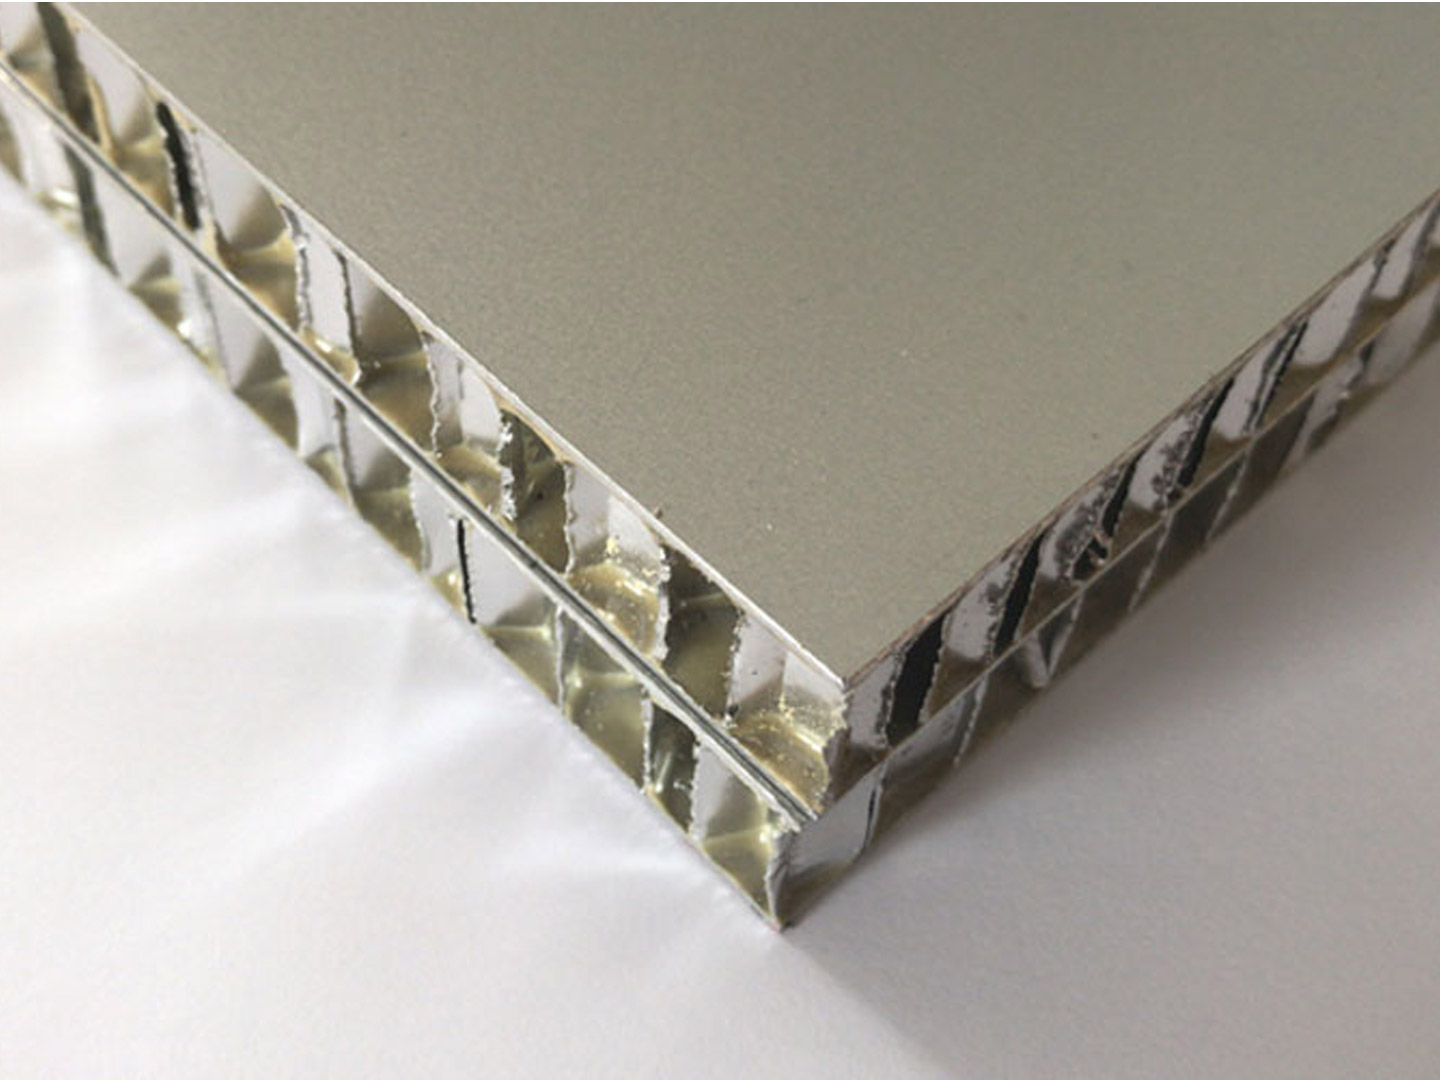 Some information about the Aluminum Honeycomb Panel